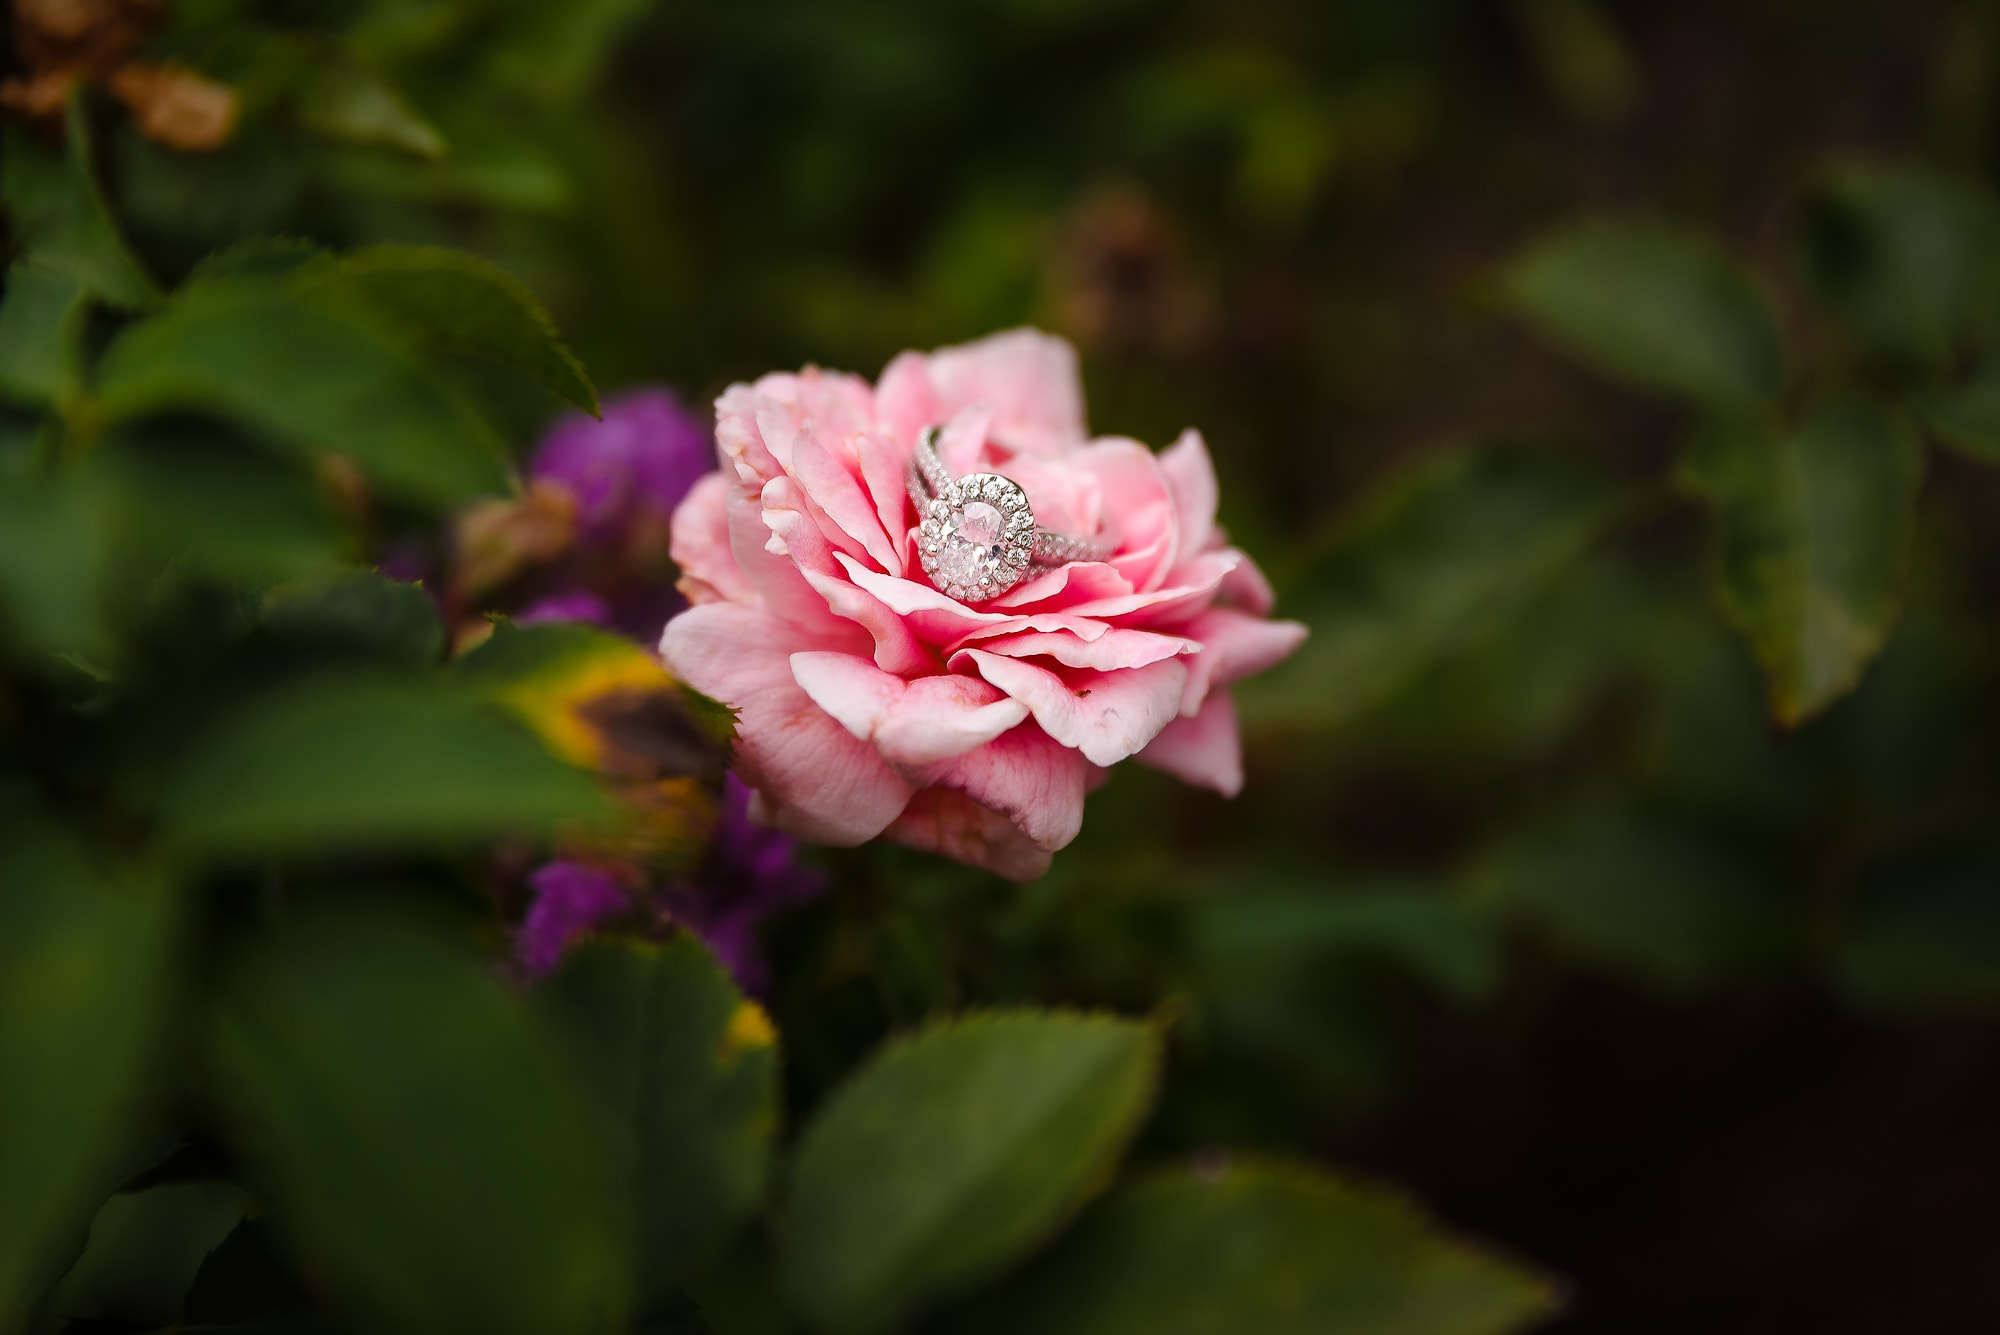 engagement ring on a rose